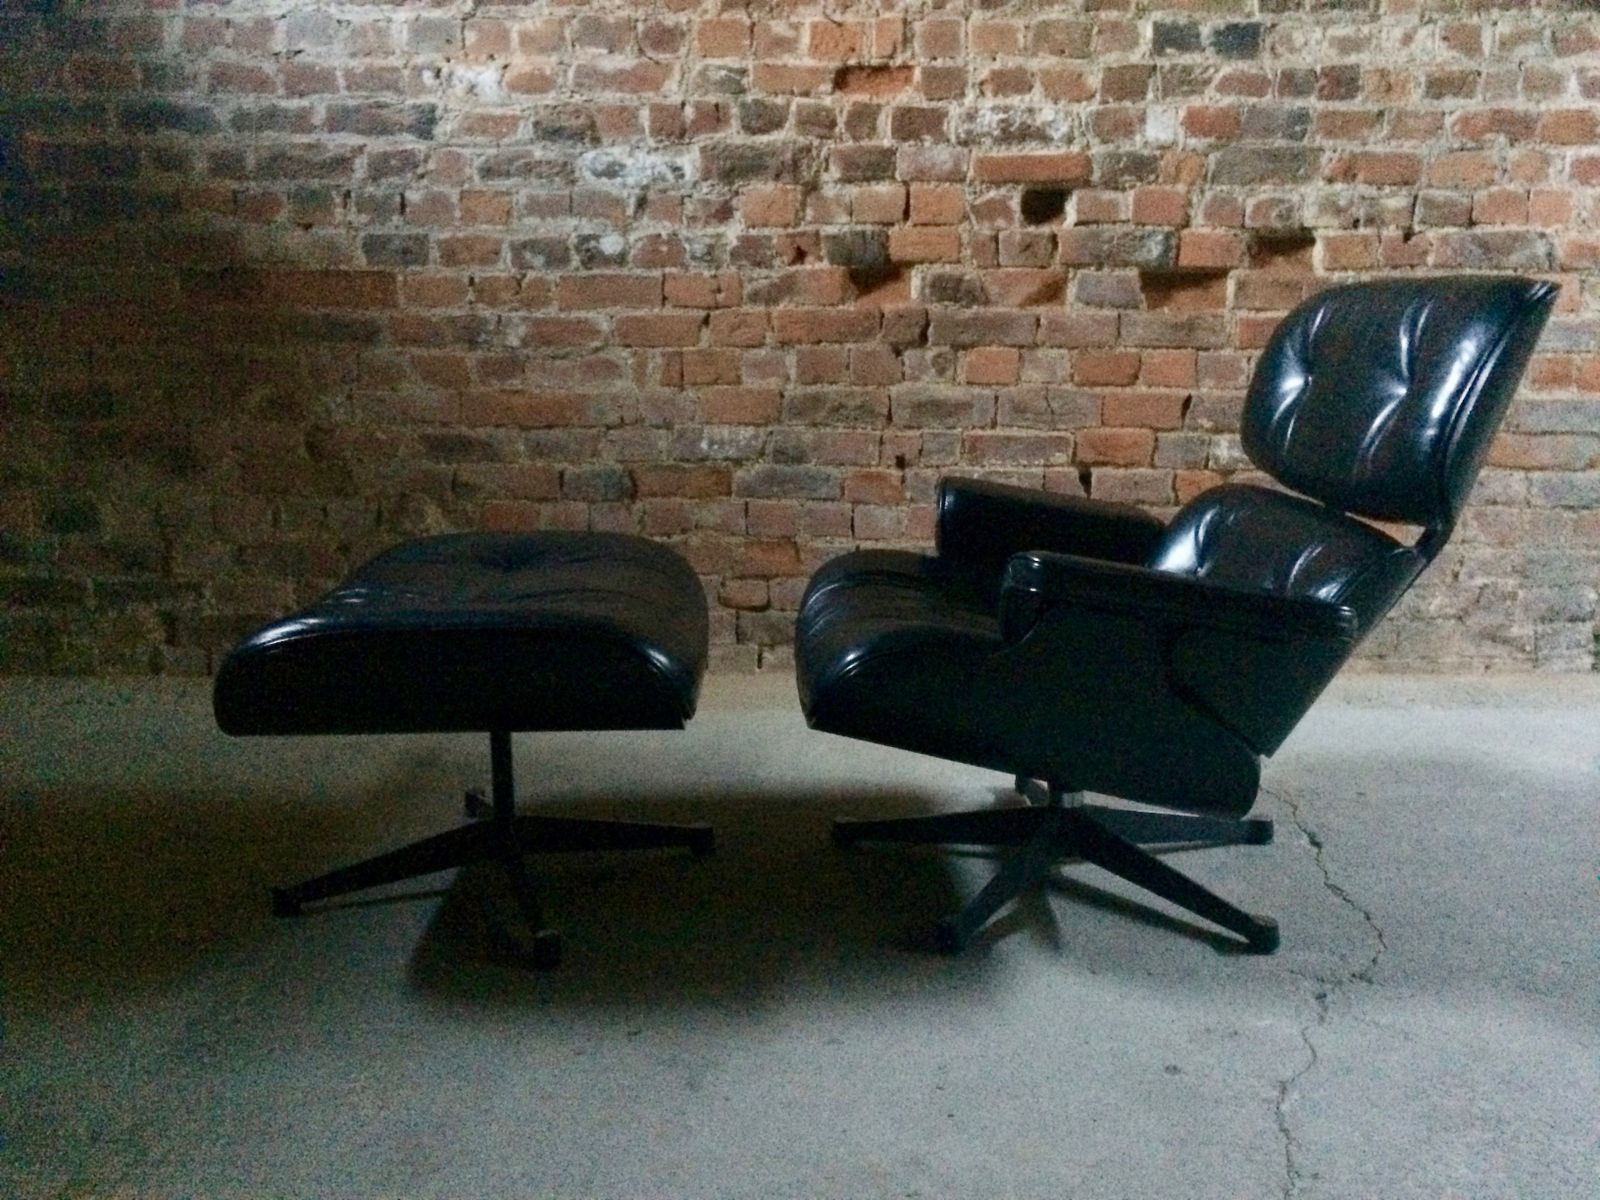 Vitra Eames Lounge Chair Black Black Ash Leather Model 670 Lounge Chair Model 671 Ottoman By Charles Ray Eames For Vitra 2008